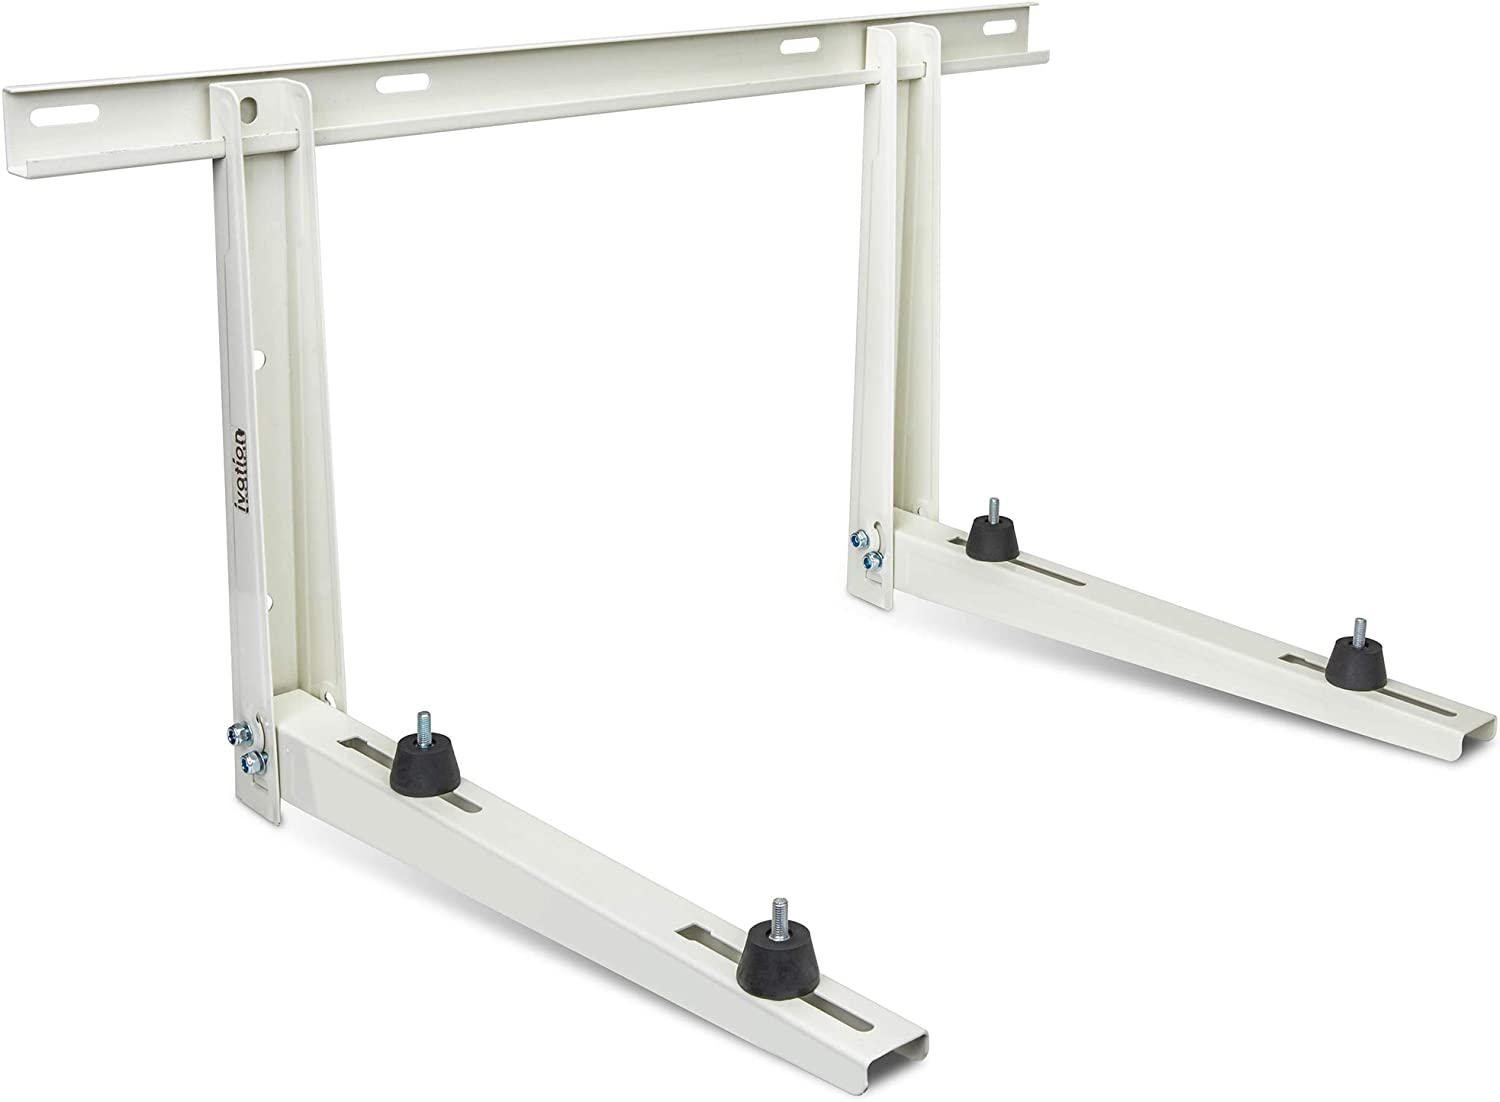 Ivation Outdoor Split Air Conditioner Mount Bracket, Heavy-Duty Wall Mounting Universal AC Bracket with Hardware for Ductless Mini Split Condenser Heat Pumps & HVAC Systems, Max 331 Lb. Capacity